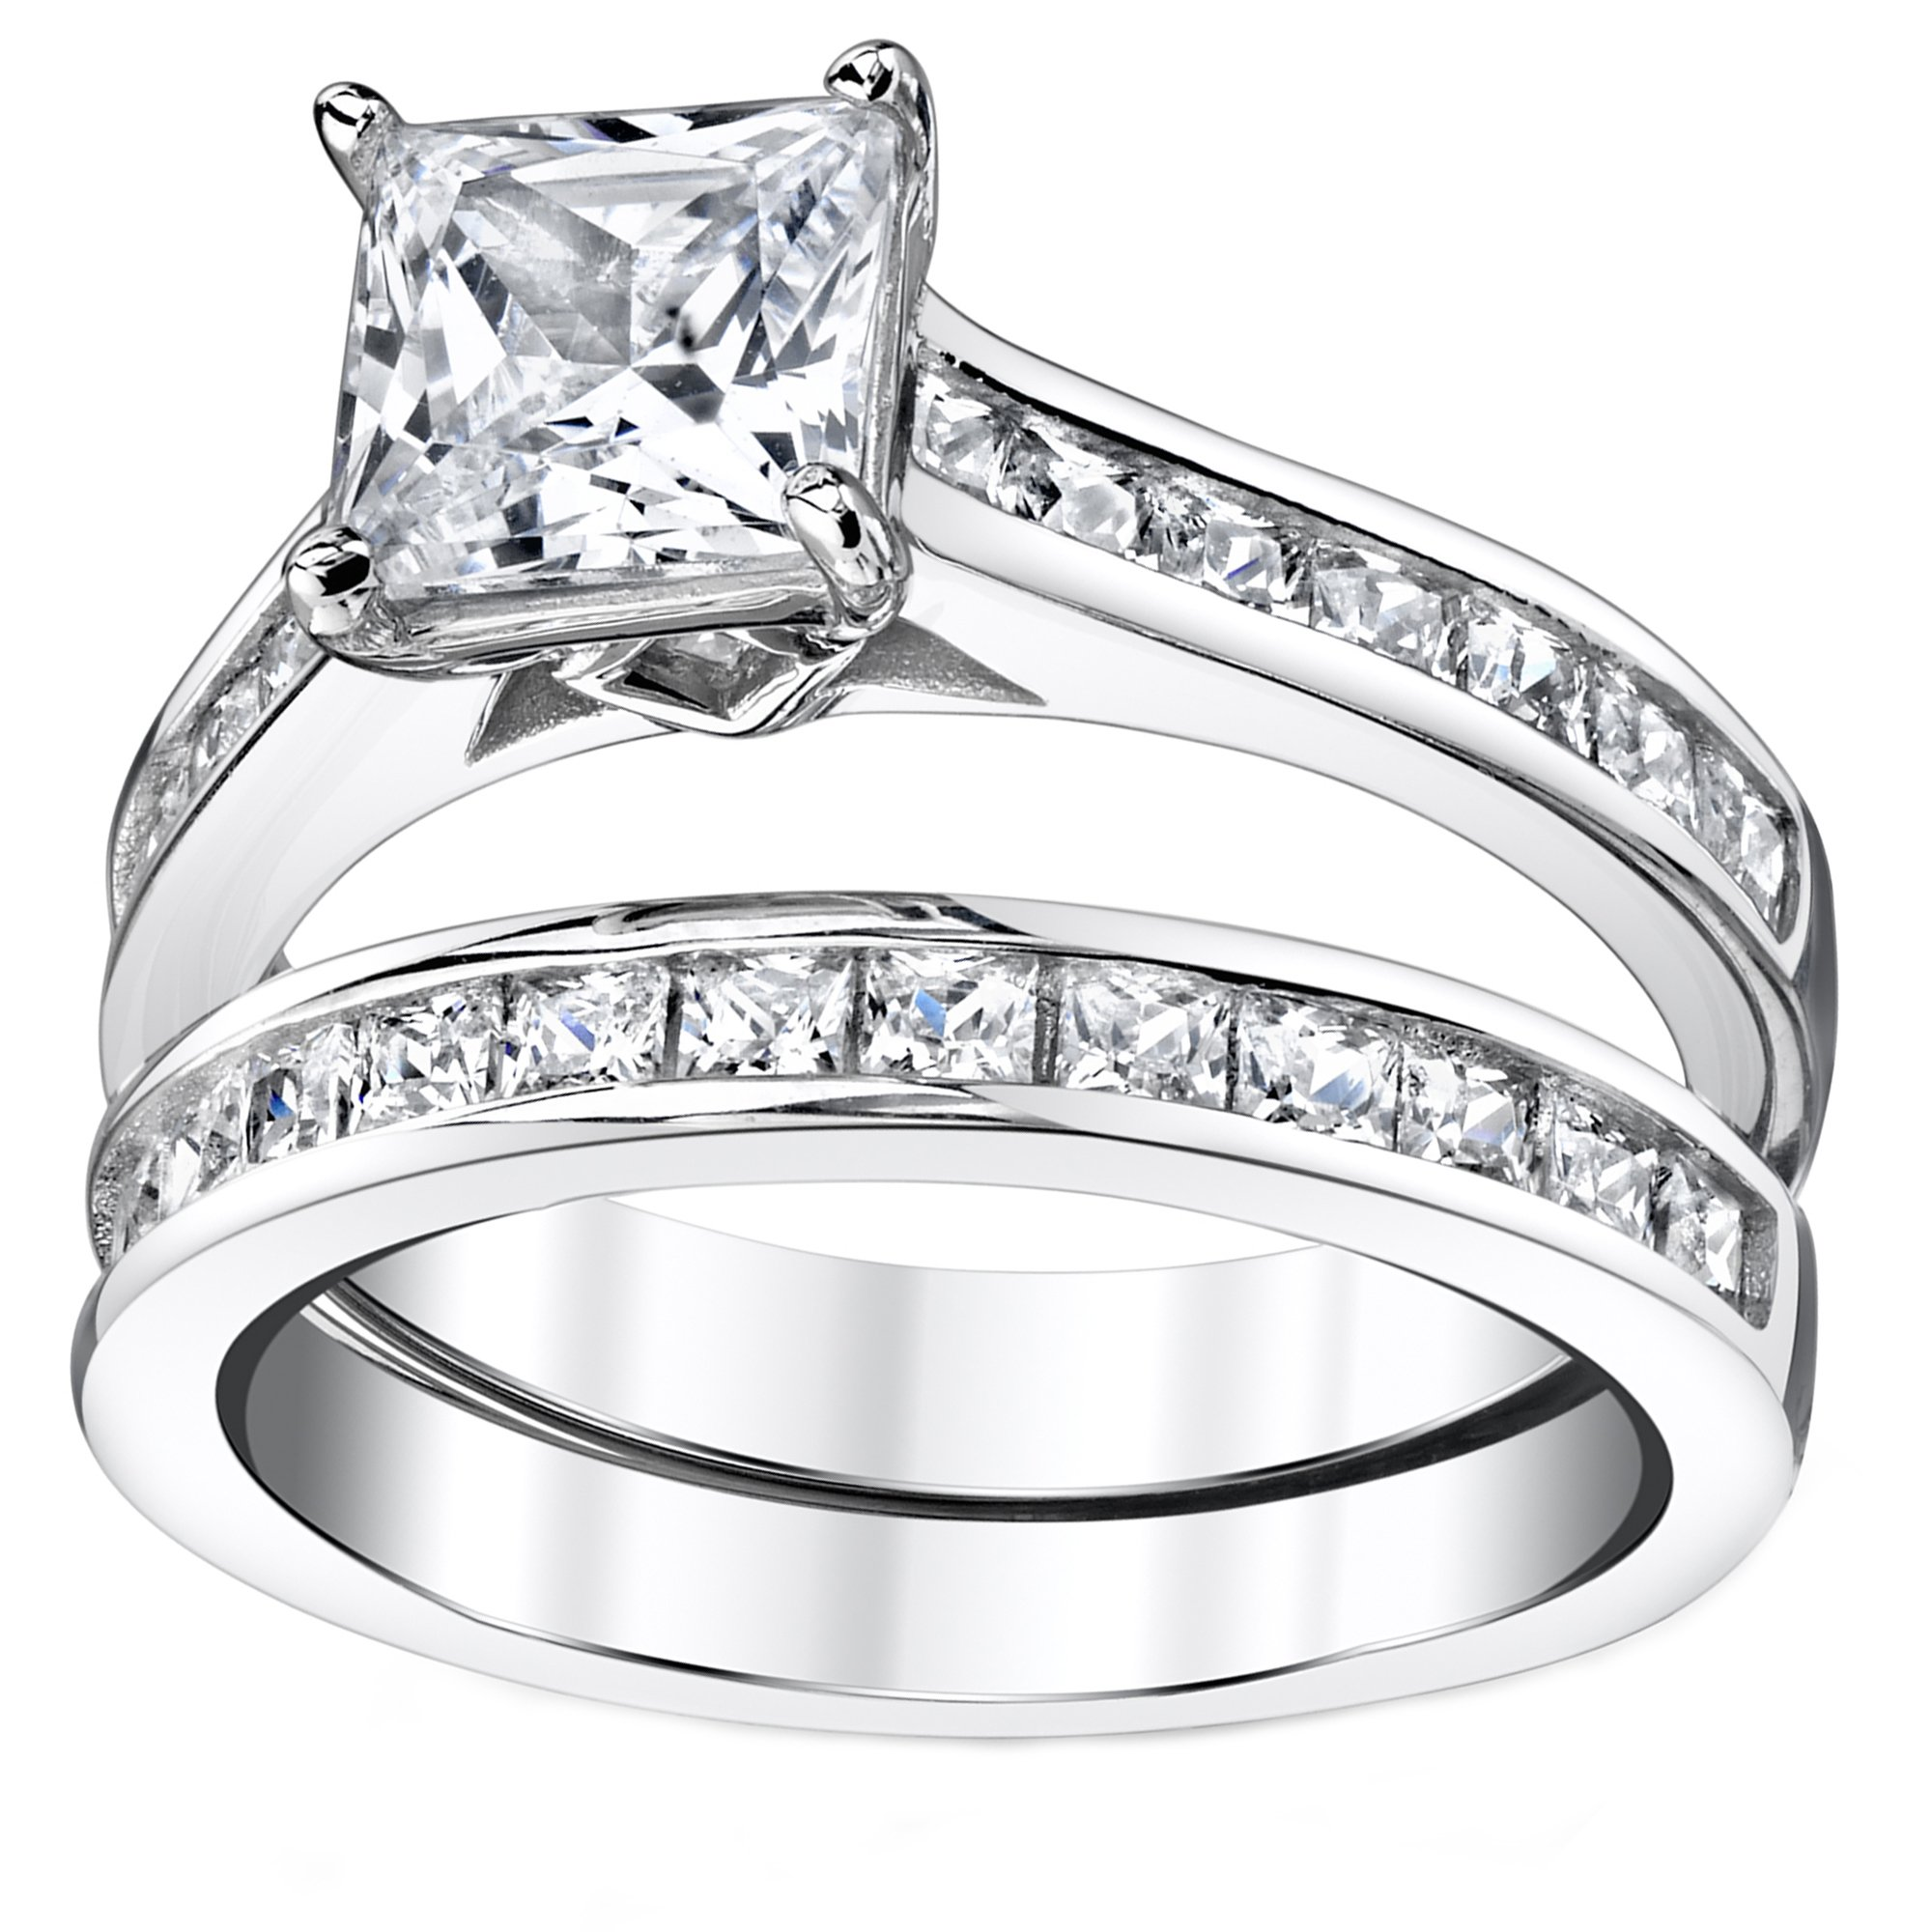 Sterling Silver Princess Cut Bridal Set Engagement Wedding Ring Bands With Cubic Zirconia Size 7 by Bonndorf (Image #2)